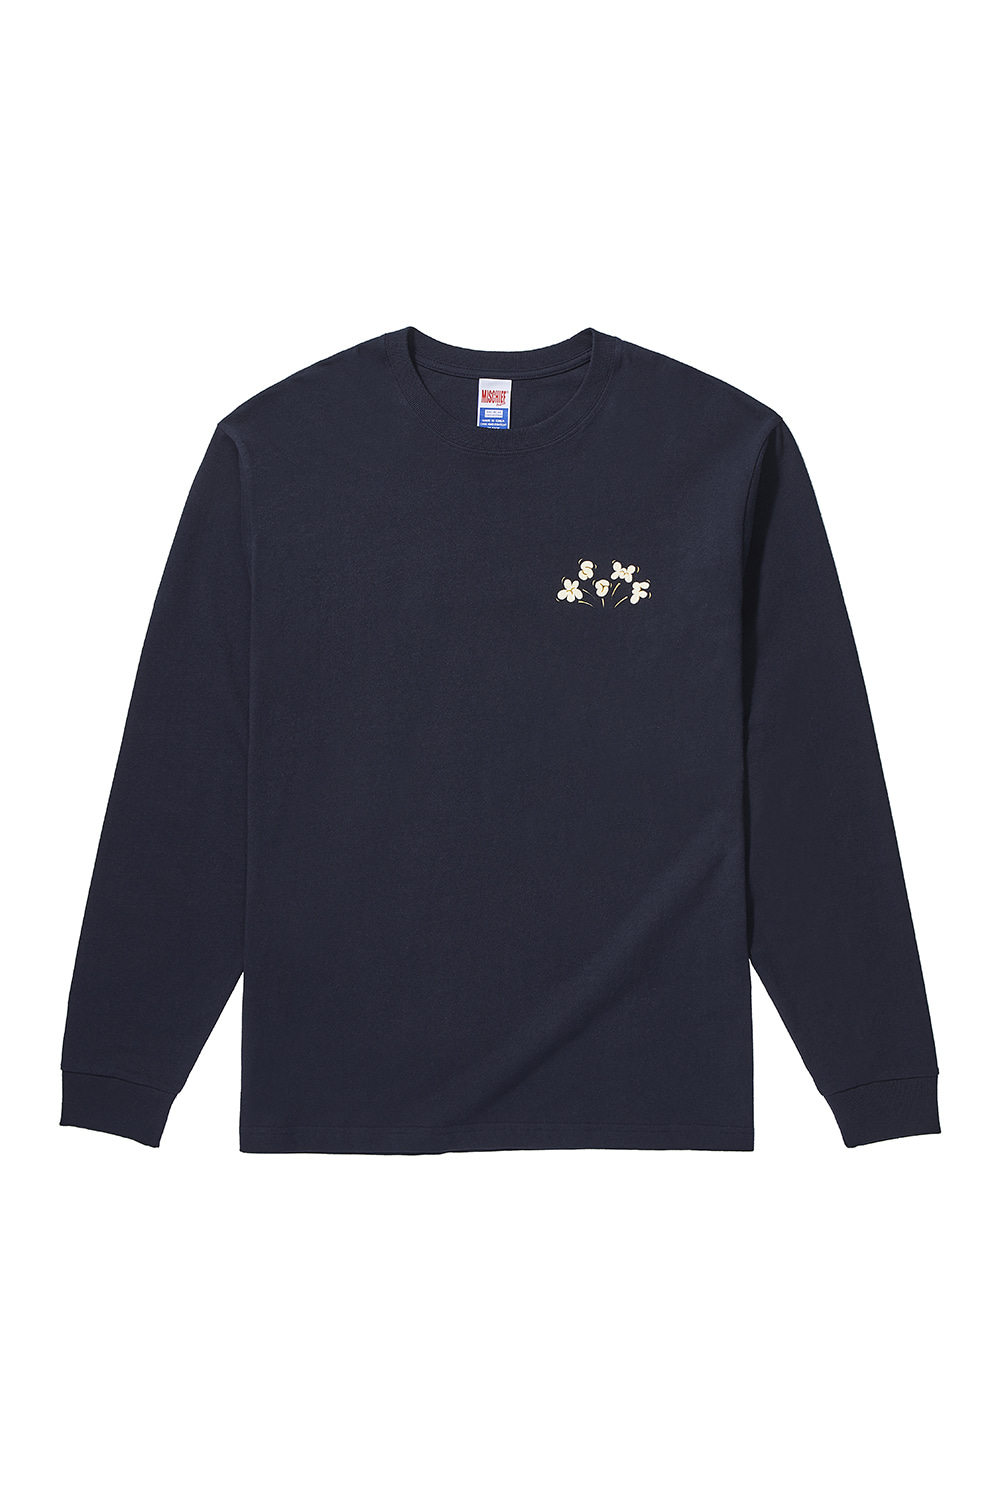 MSCHF_POPCORN LONG SLEEVE_navy